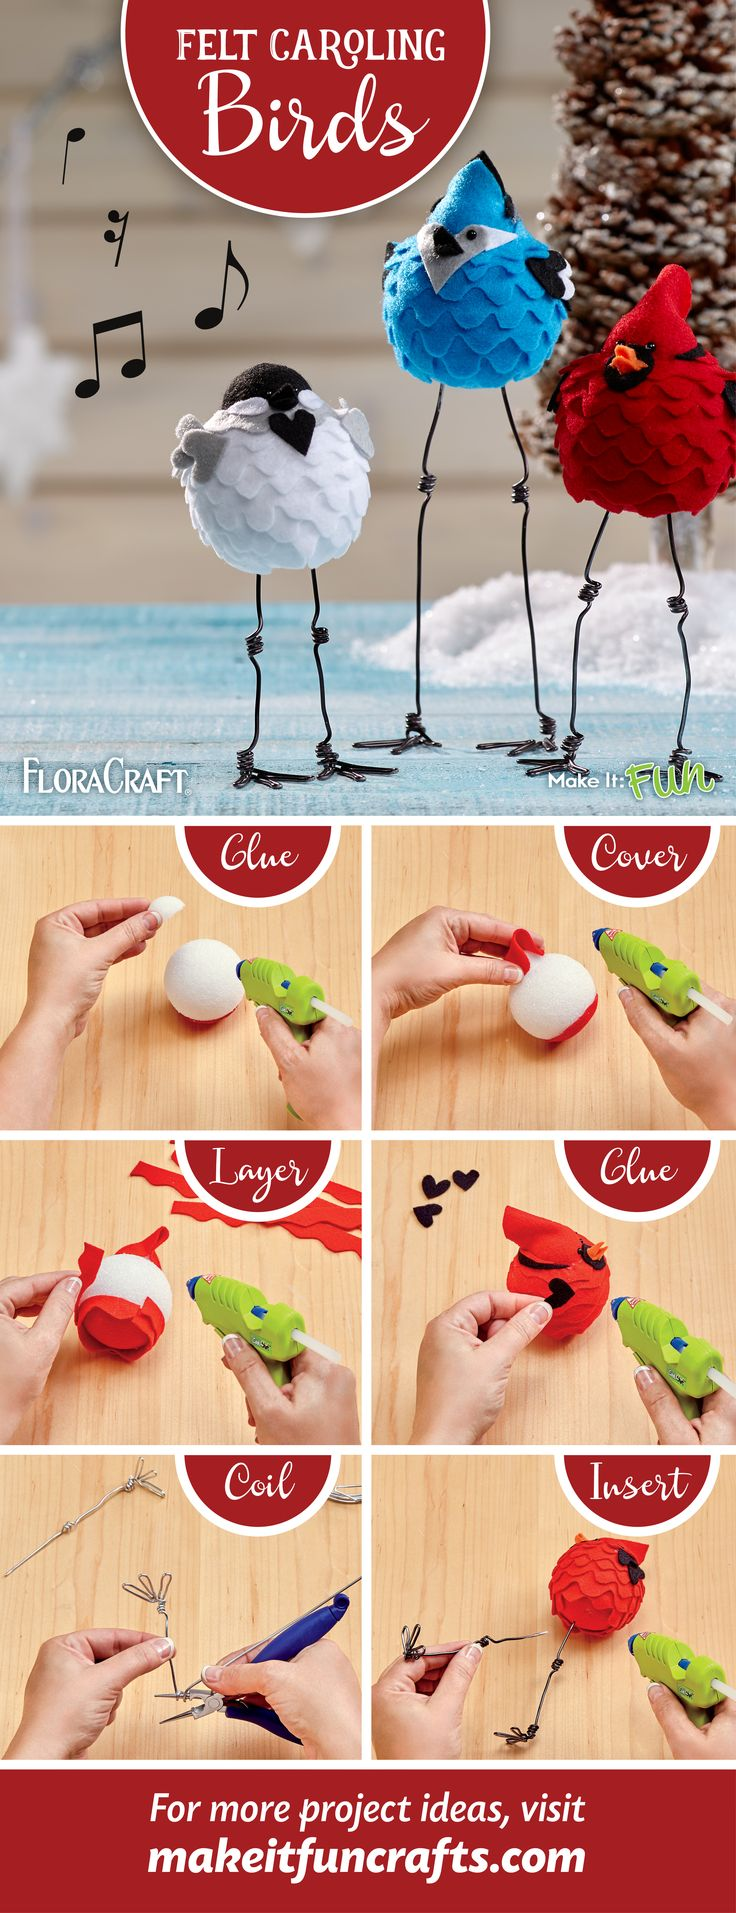 Craft adorable felt birds to complete your holiday mantlescape!                                                                                                                                                                                 More